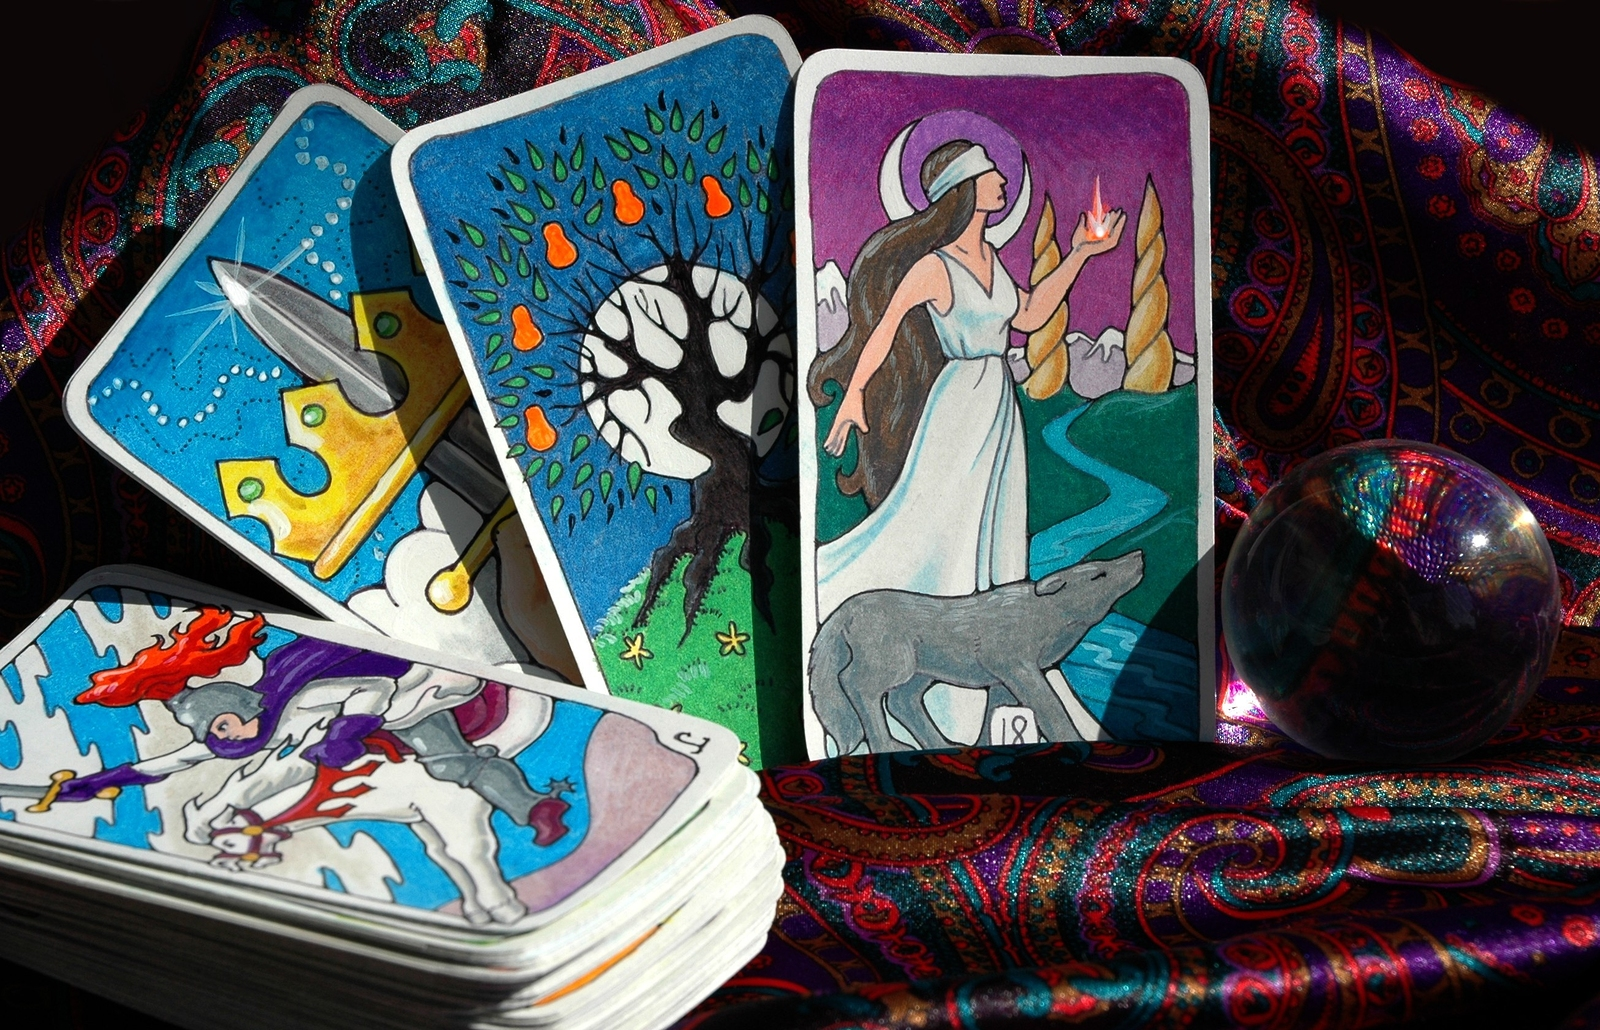 IMG Source: tarotmedium.com